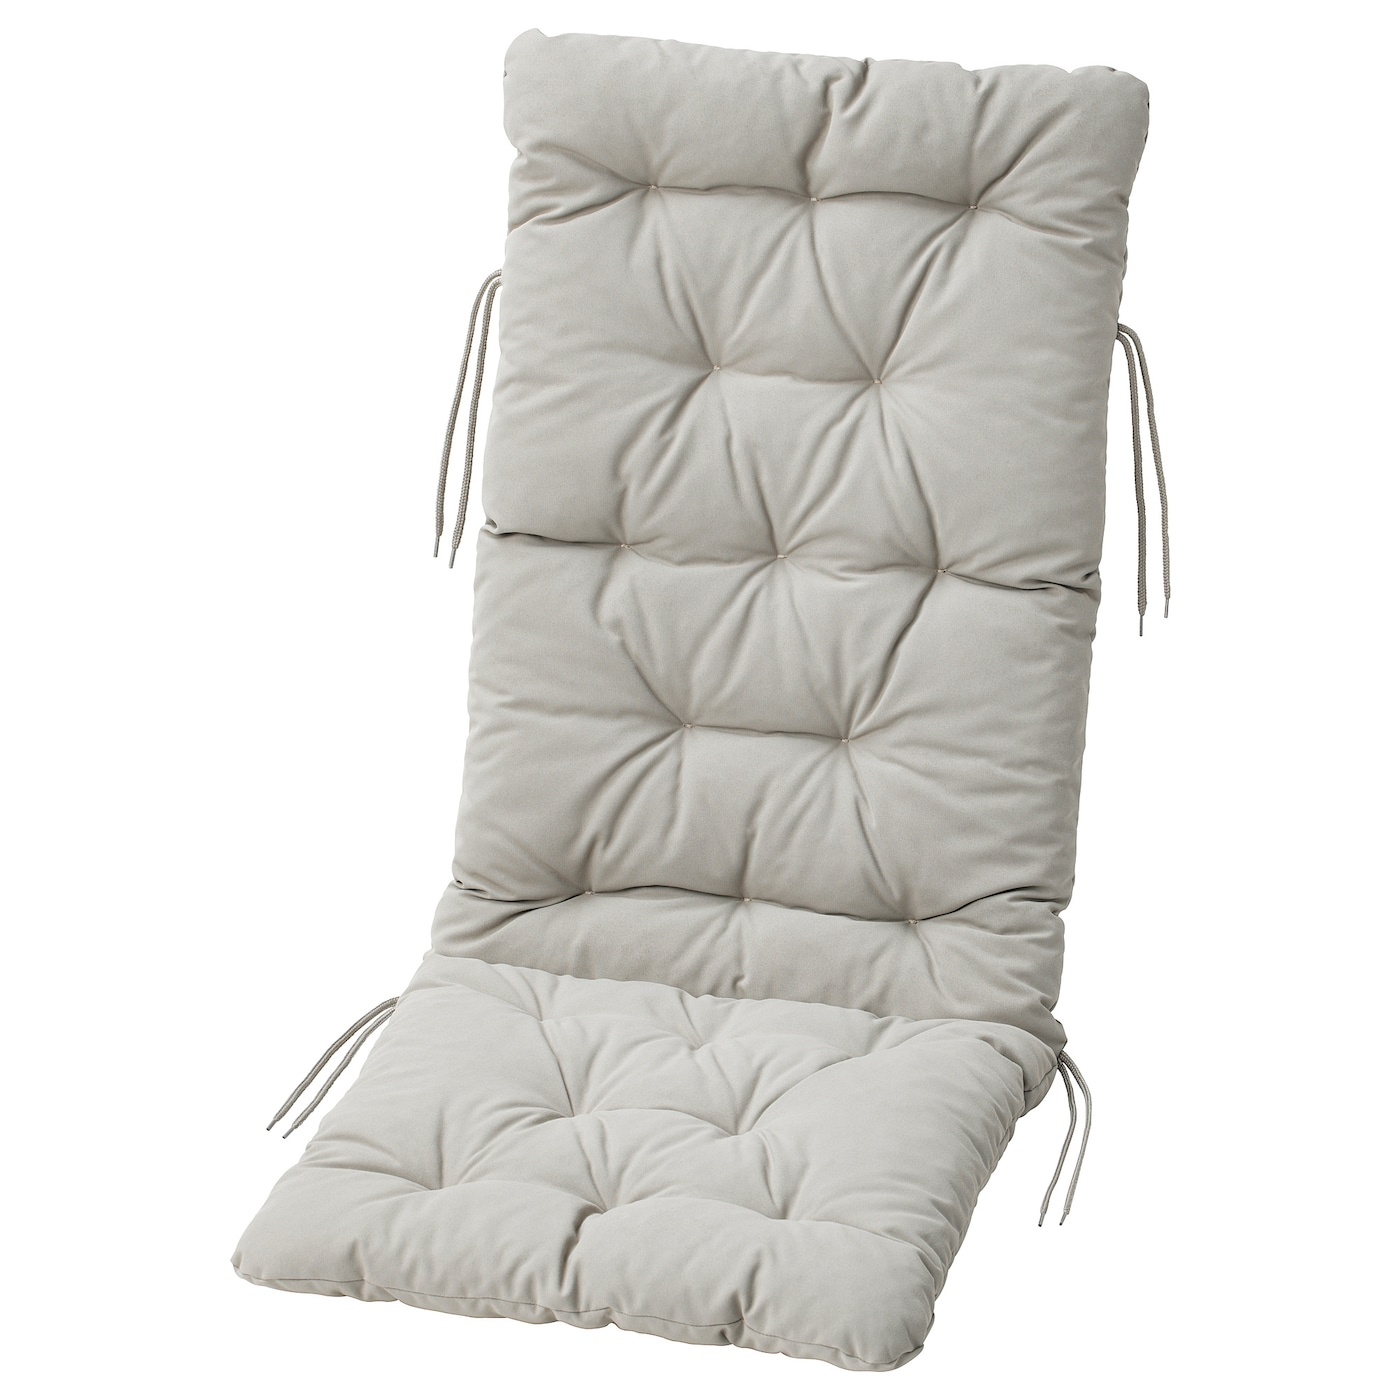 Ikea Kuddarna Seat Back Cushion Outdoor Ties Keep The Firmly In Place On